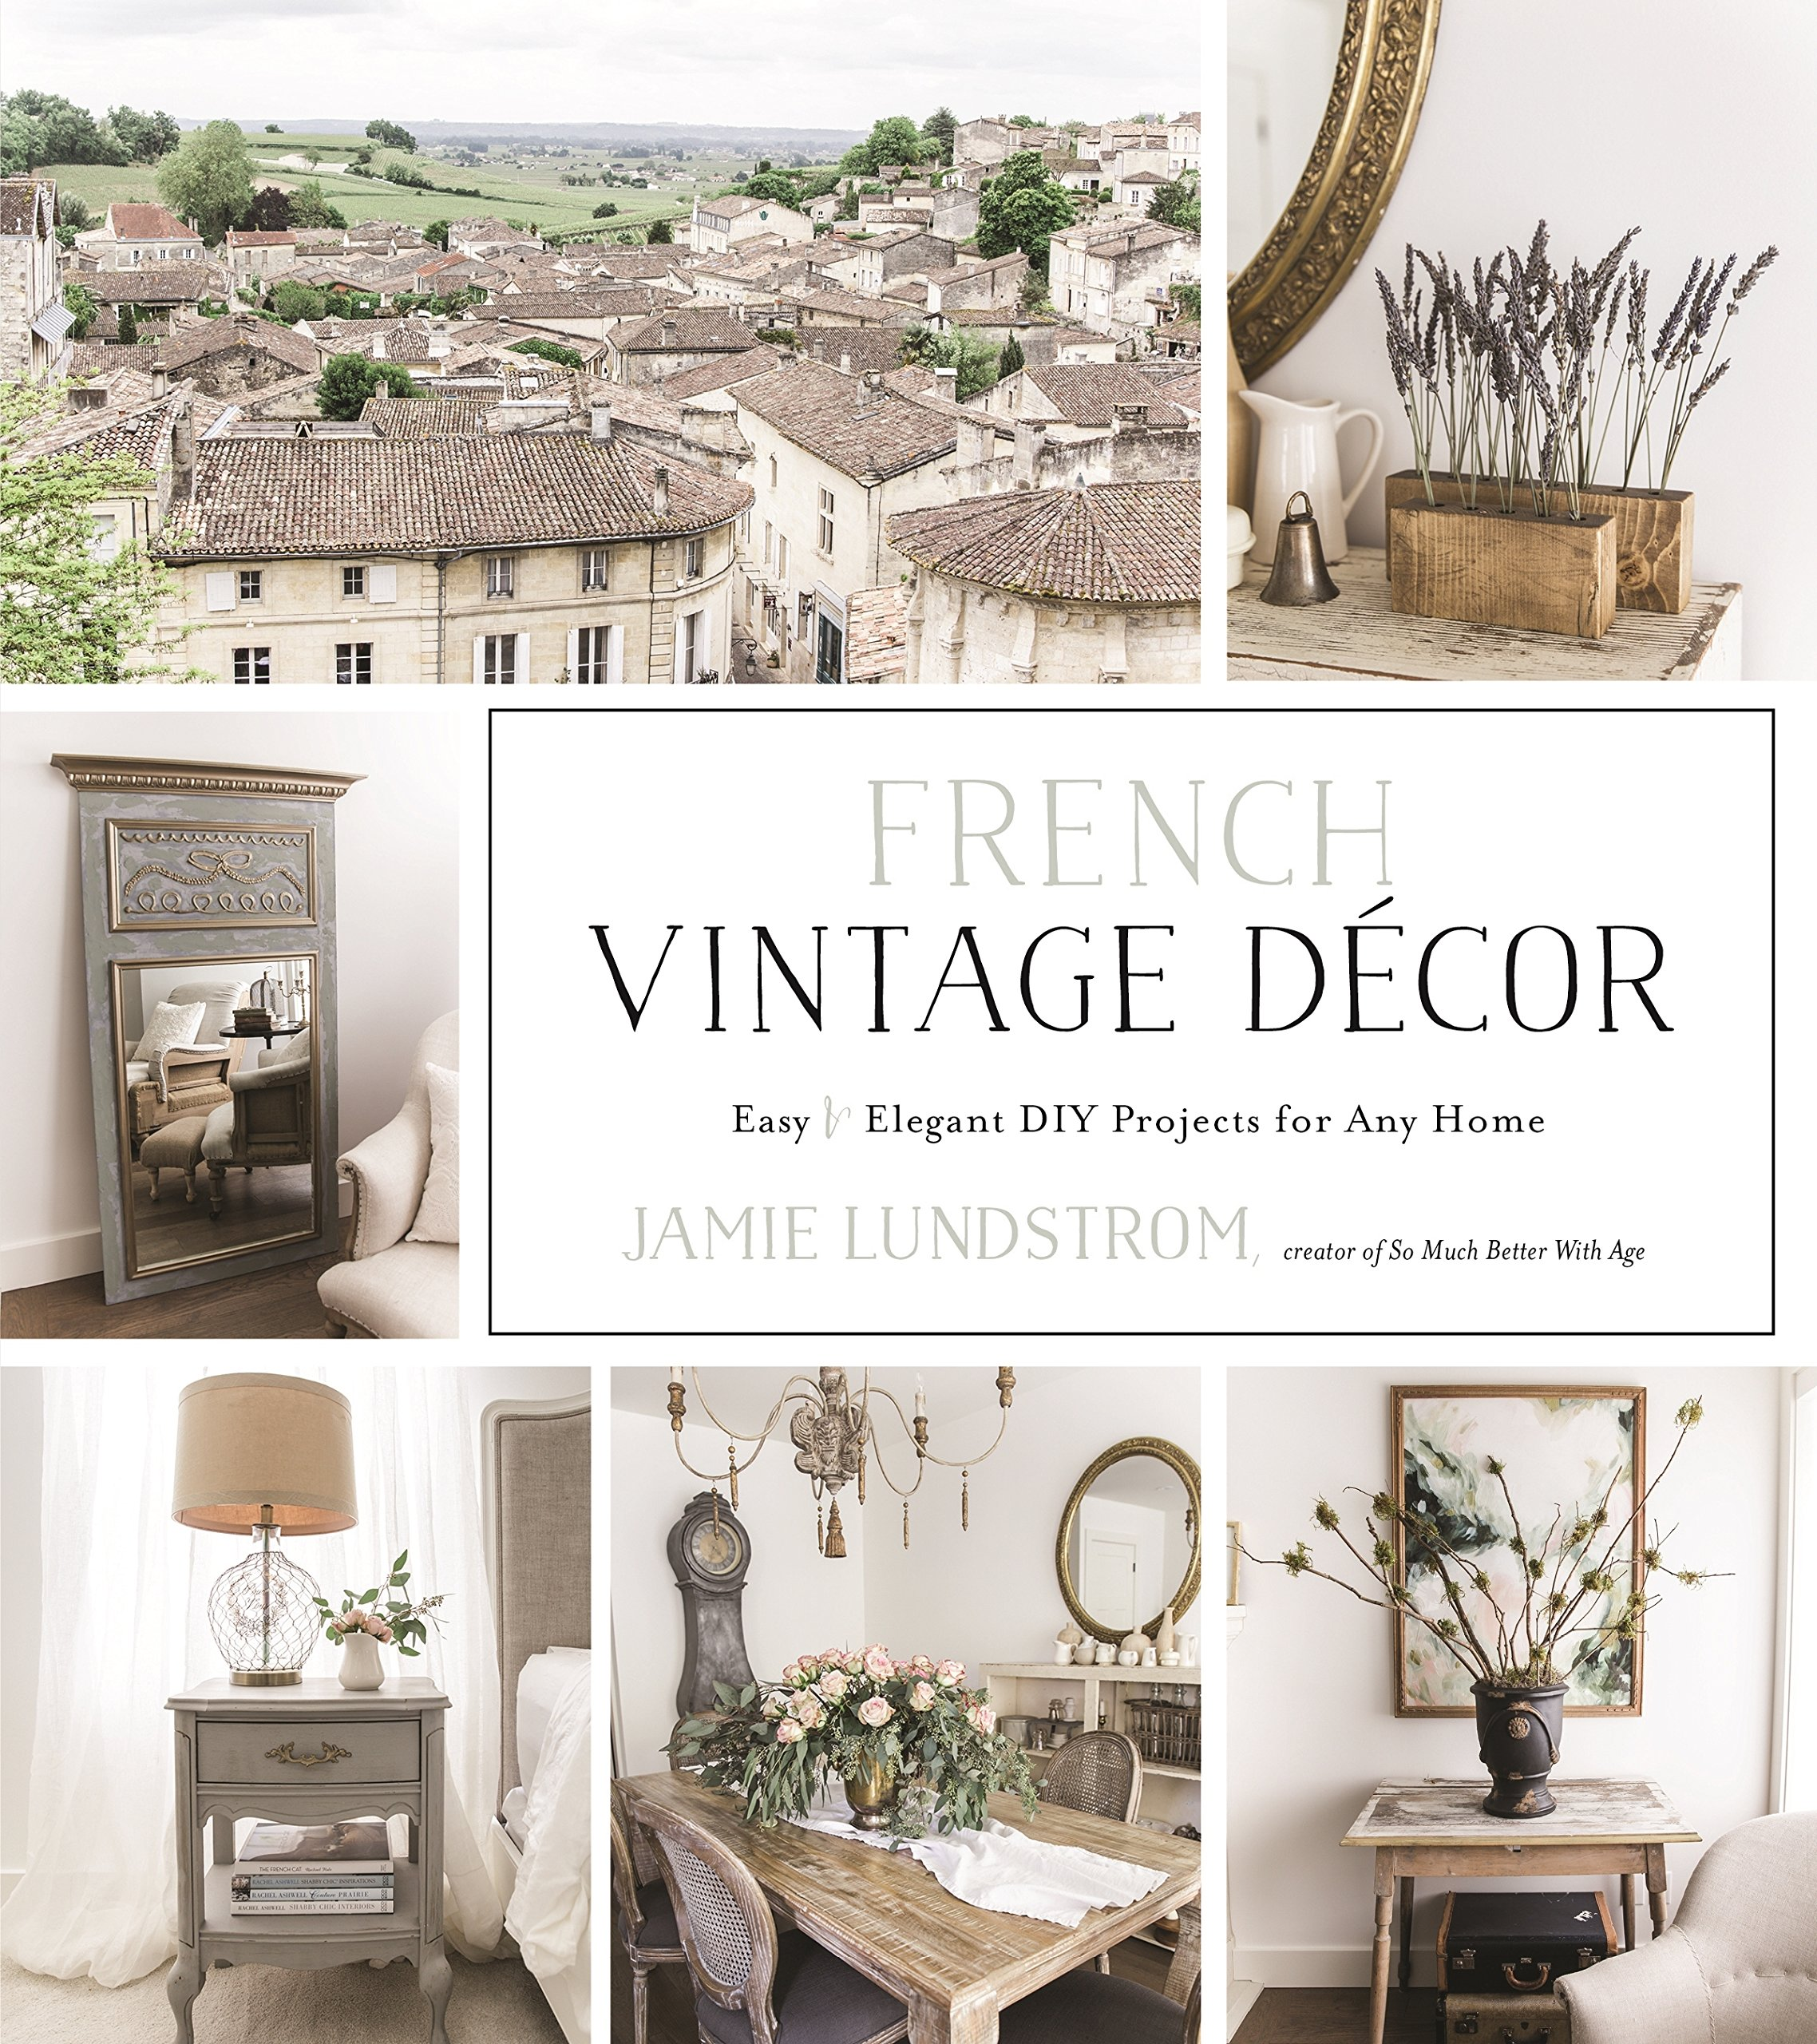 French Vintage Décor: Easy and Elegant DIY Projects for Any Home:  Lundstrom, Jamie: 9781624145421: Amazon.com: Books